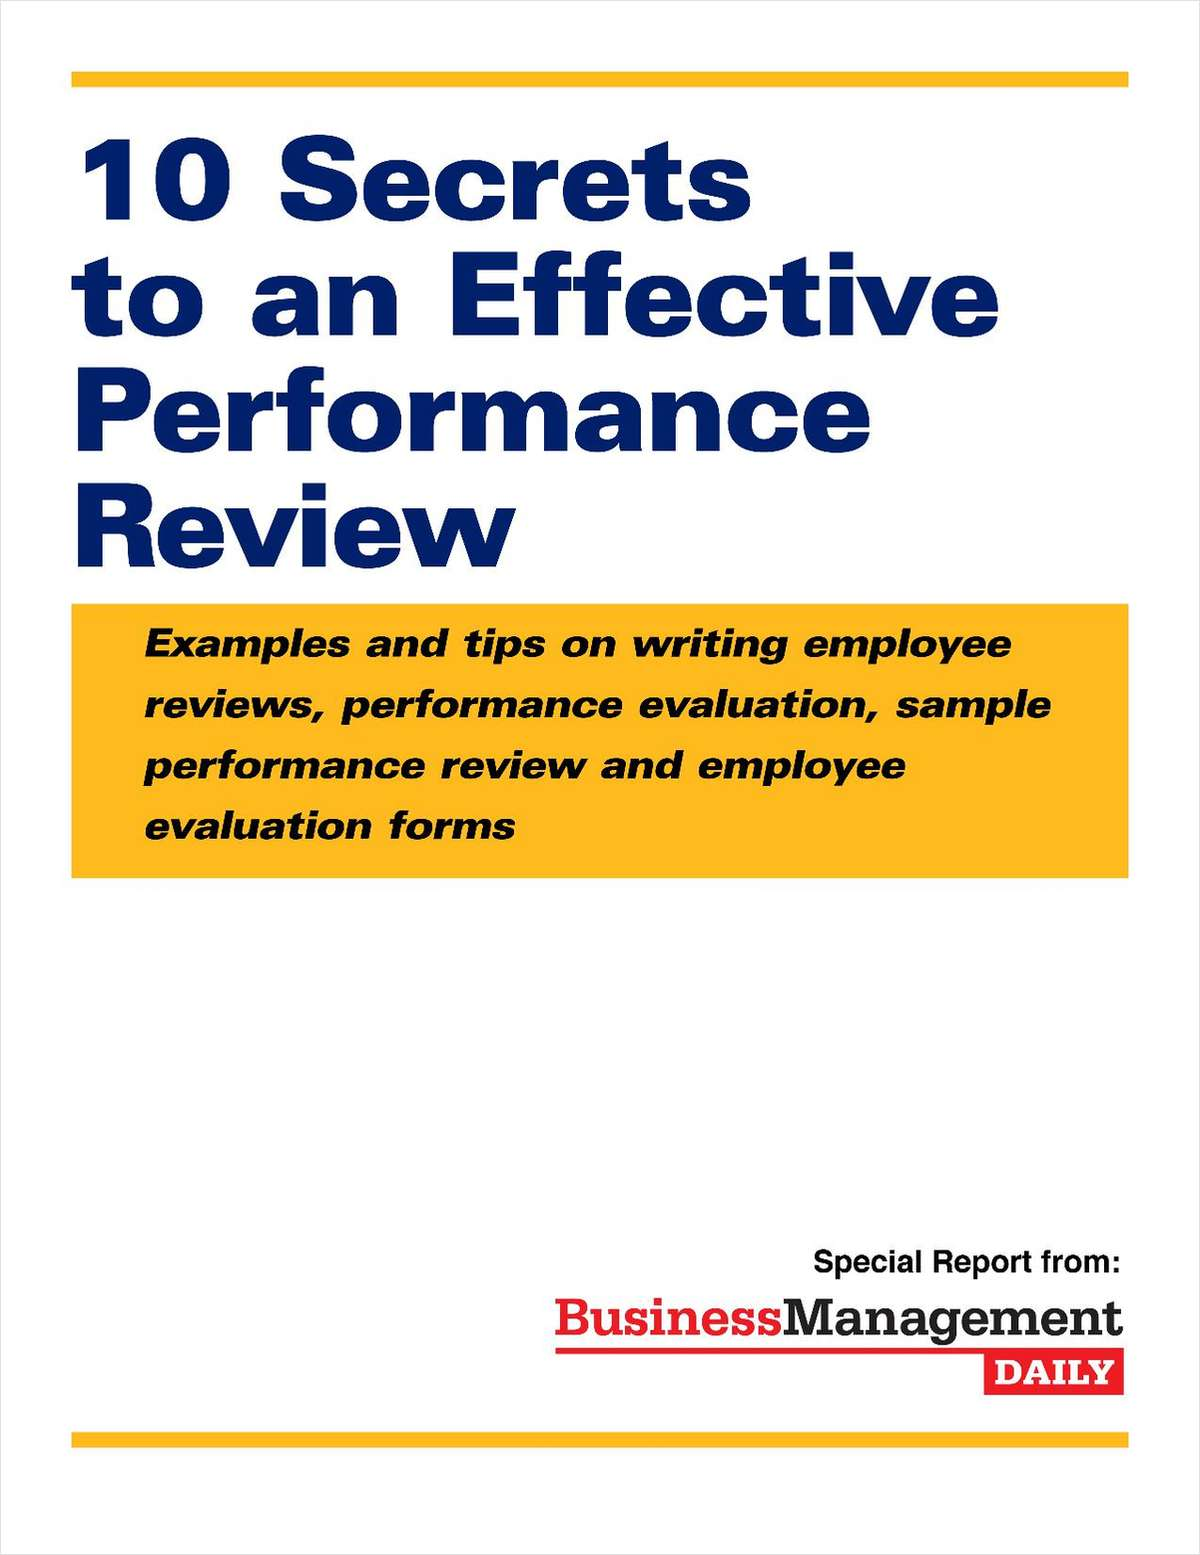 10 Secrets to an Effective Performance Review: Examples and Tips